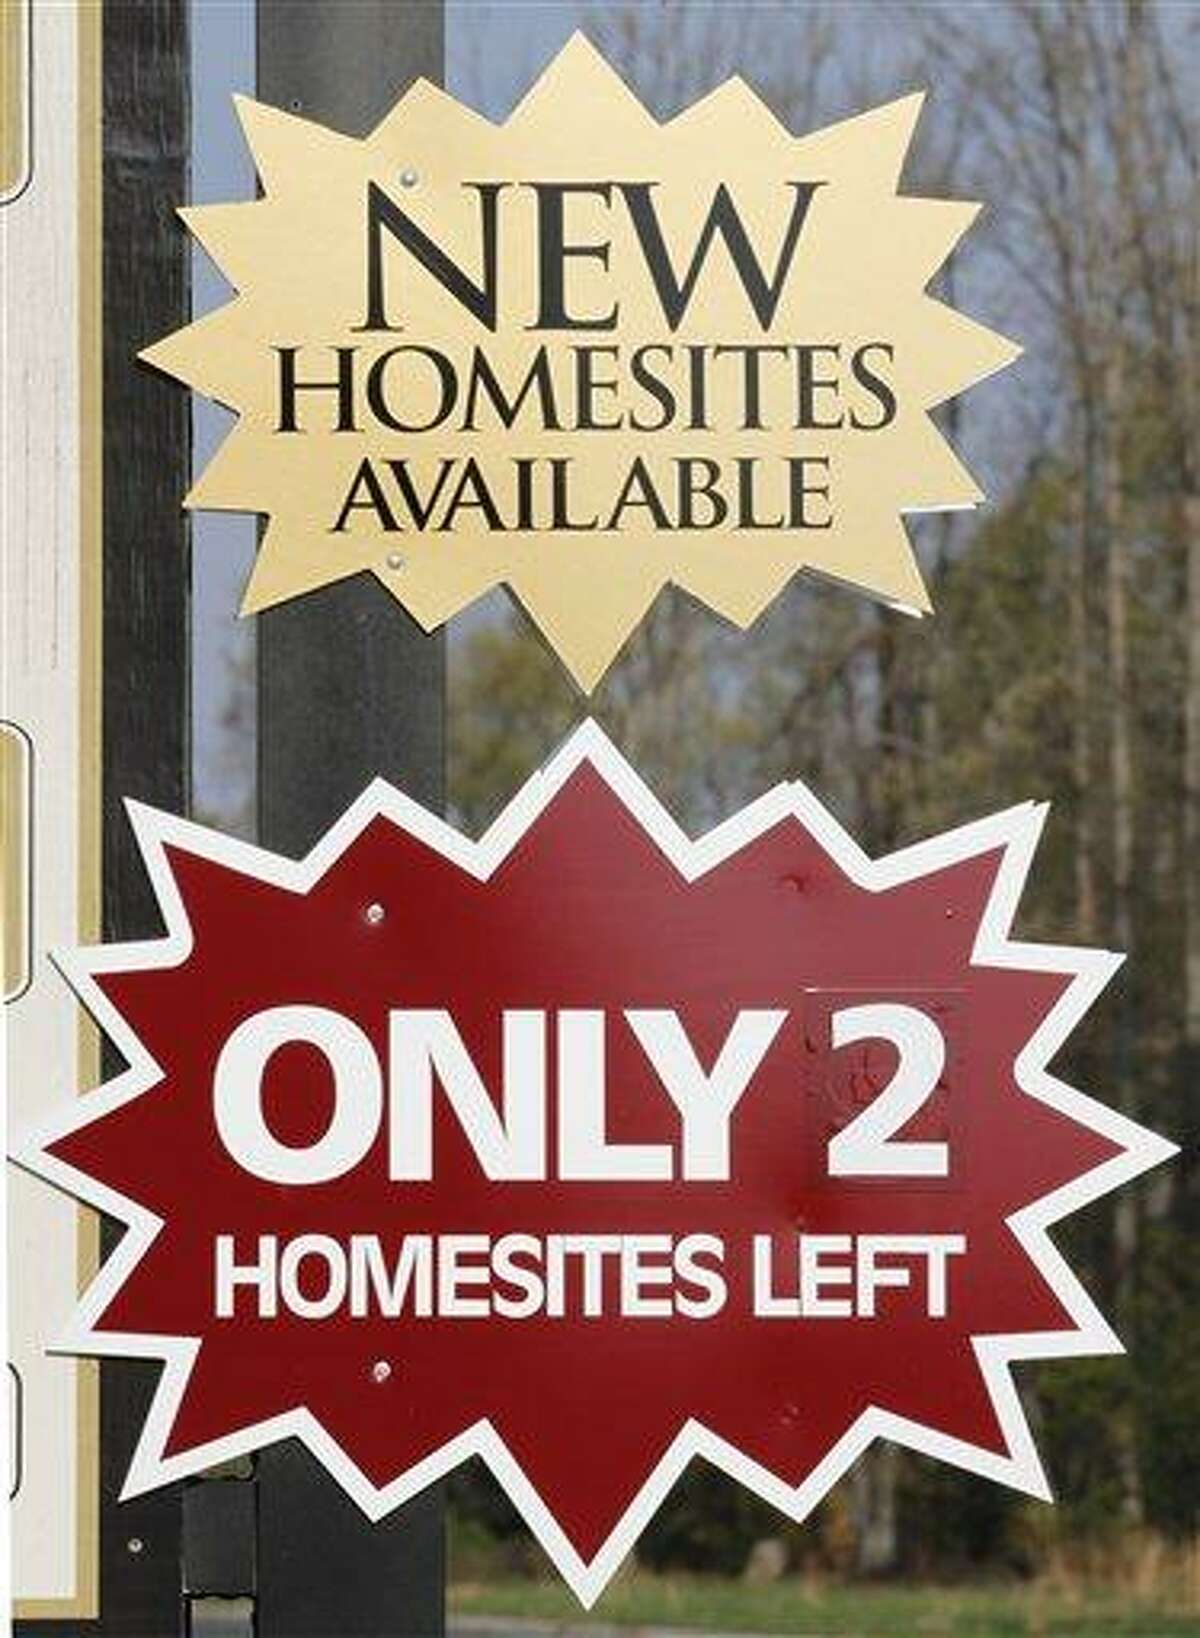 Signs promote new home sales in Mechanicsville, Va., Friday. Sales of U.S. new homes fell in February for the second straight month, a reminder that the depressed housing market remains weak despite some improvement. Associated Press